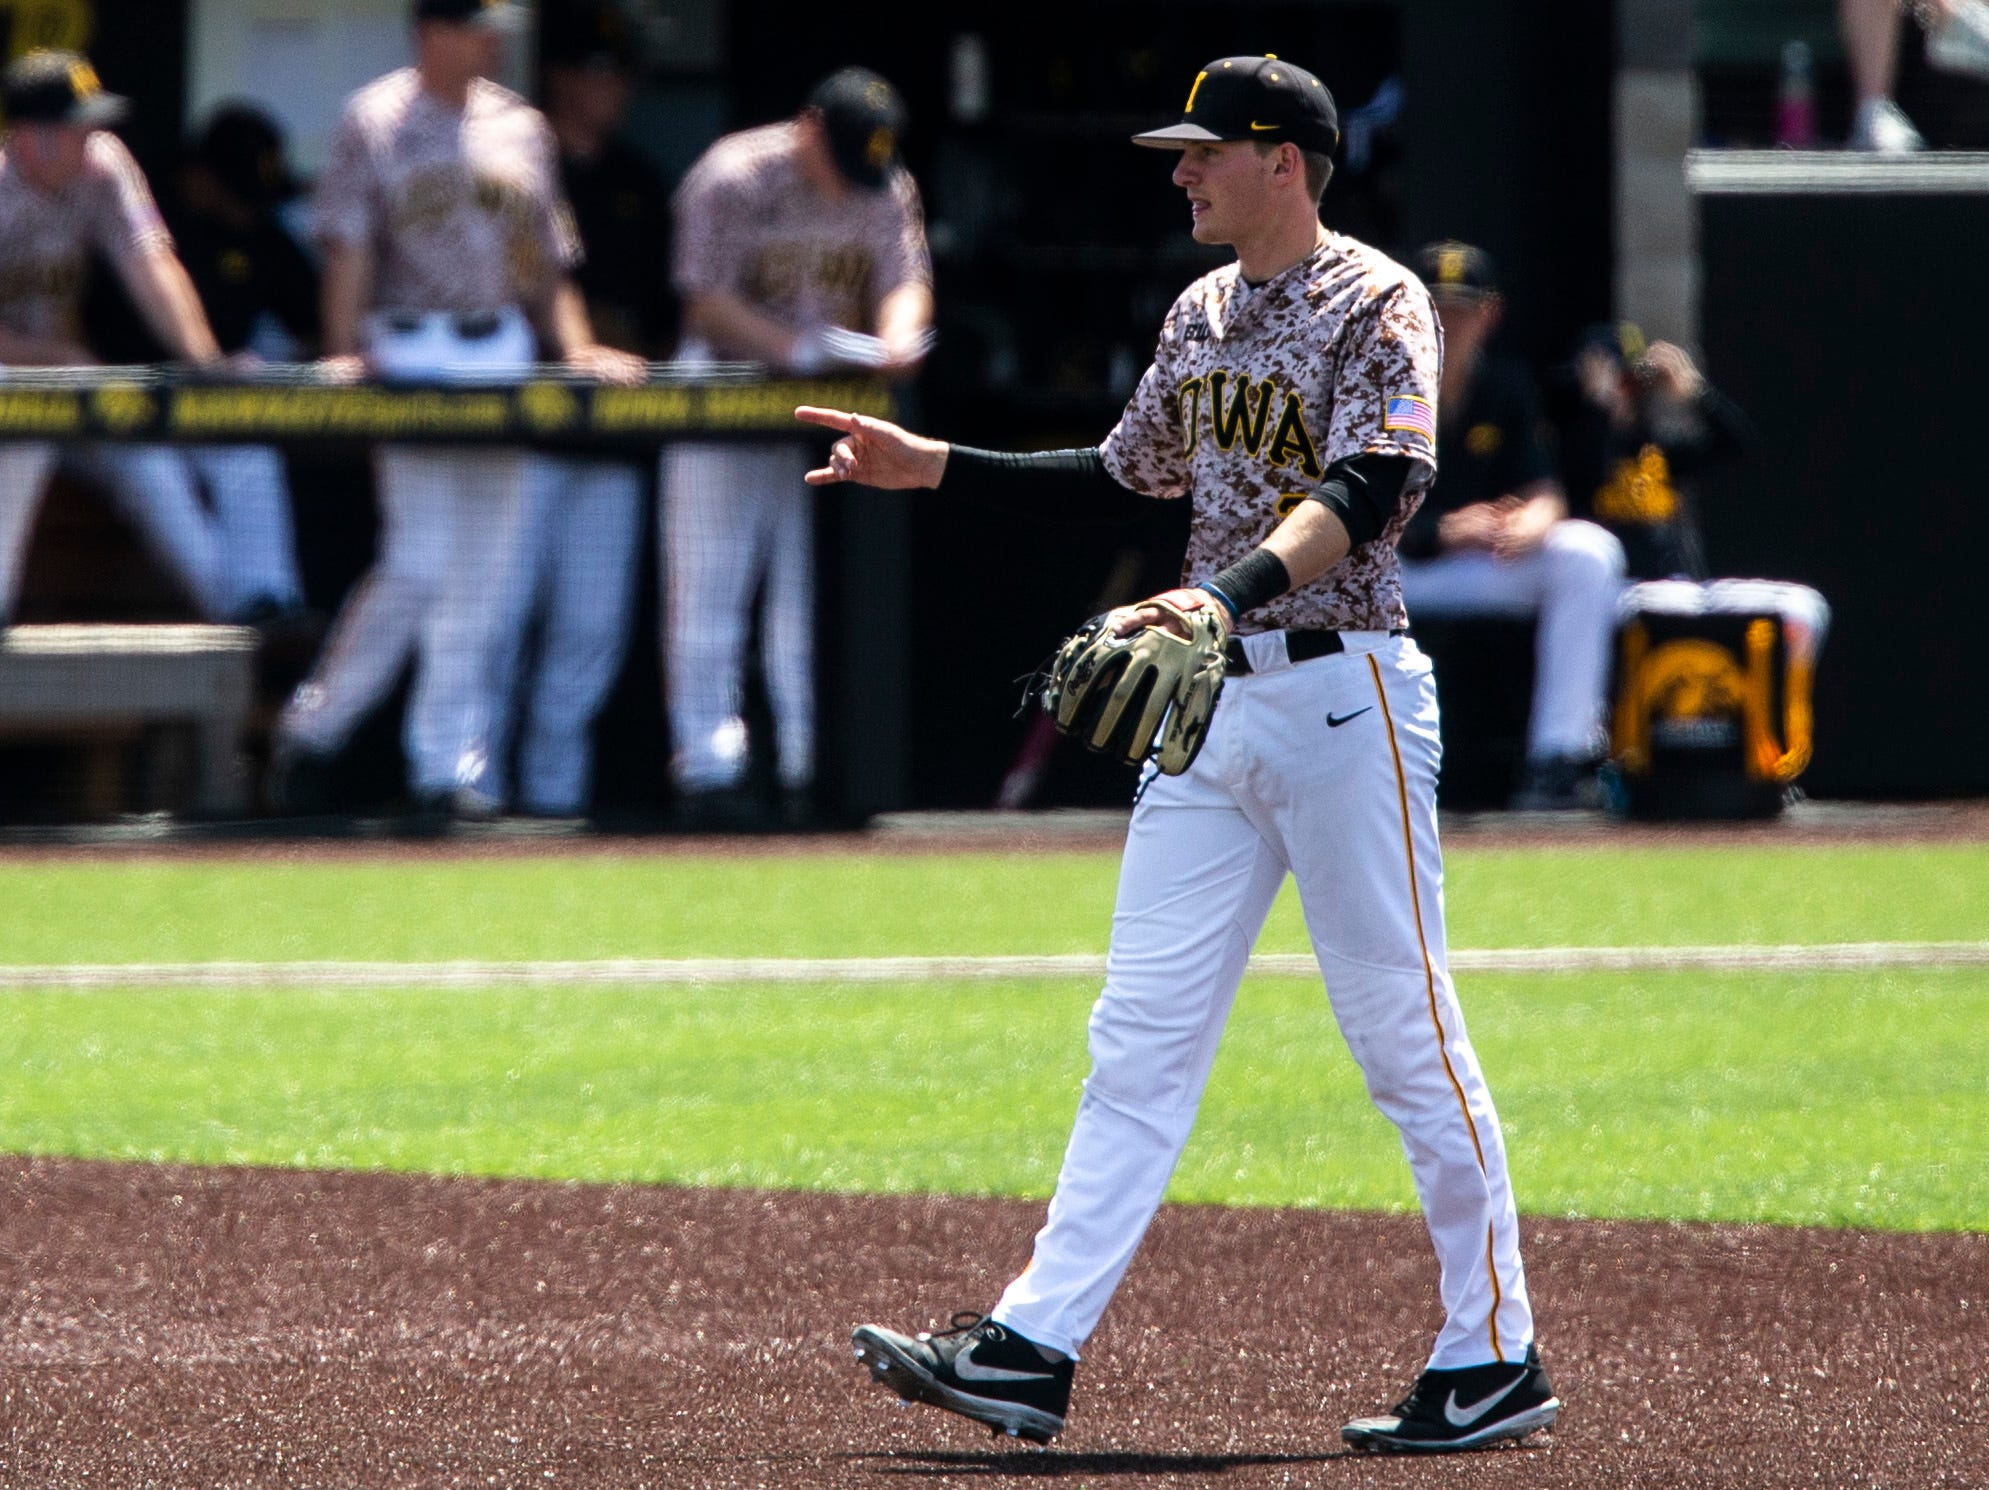 Iowa infielder Brendan Sher (2) gestures after a second out during a NCAA non conference baseball game, Sunday, May 5, 2019, at Duane Banks Field in Iowa City, Iowa.